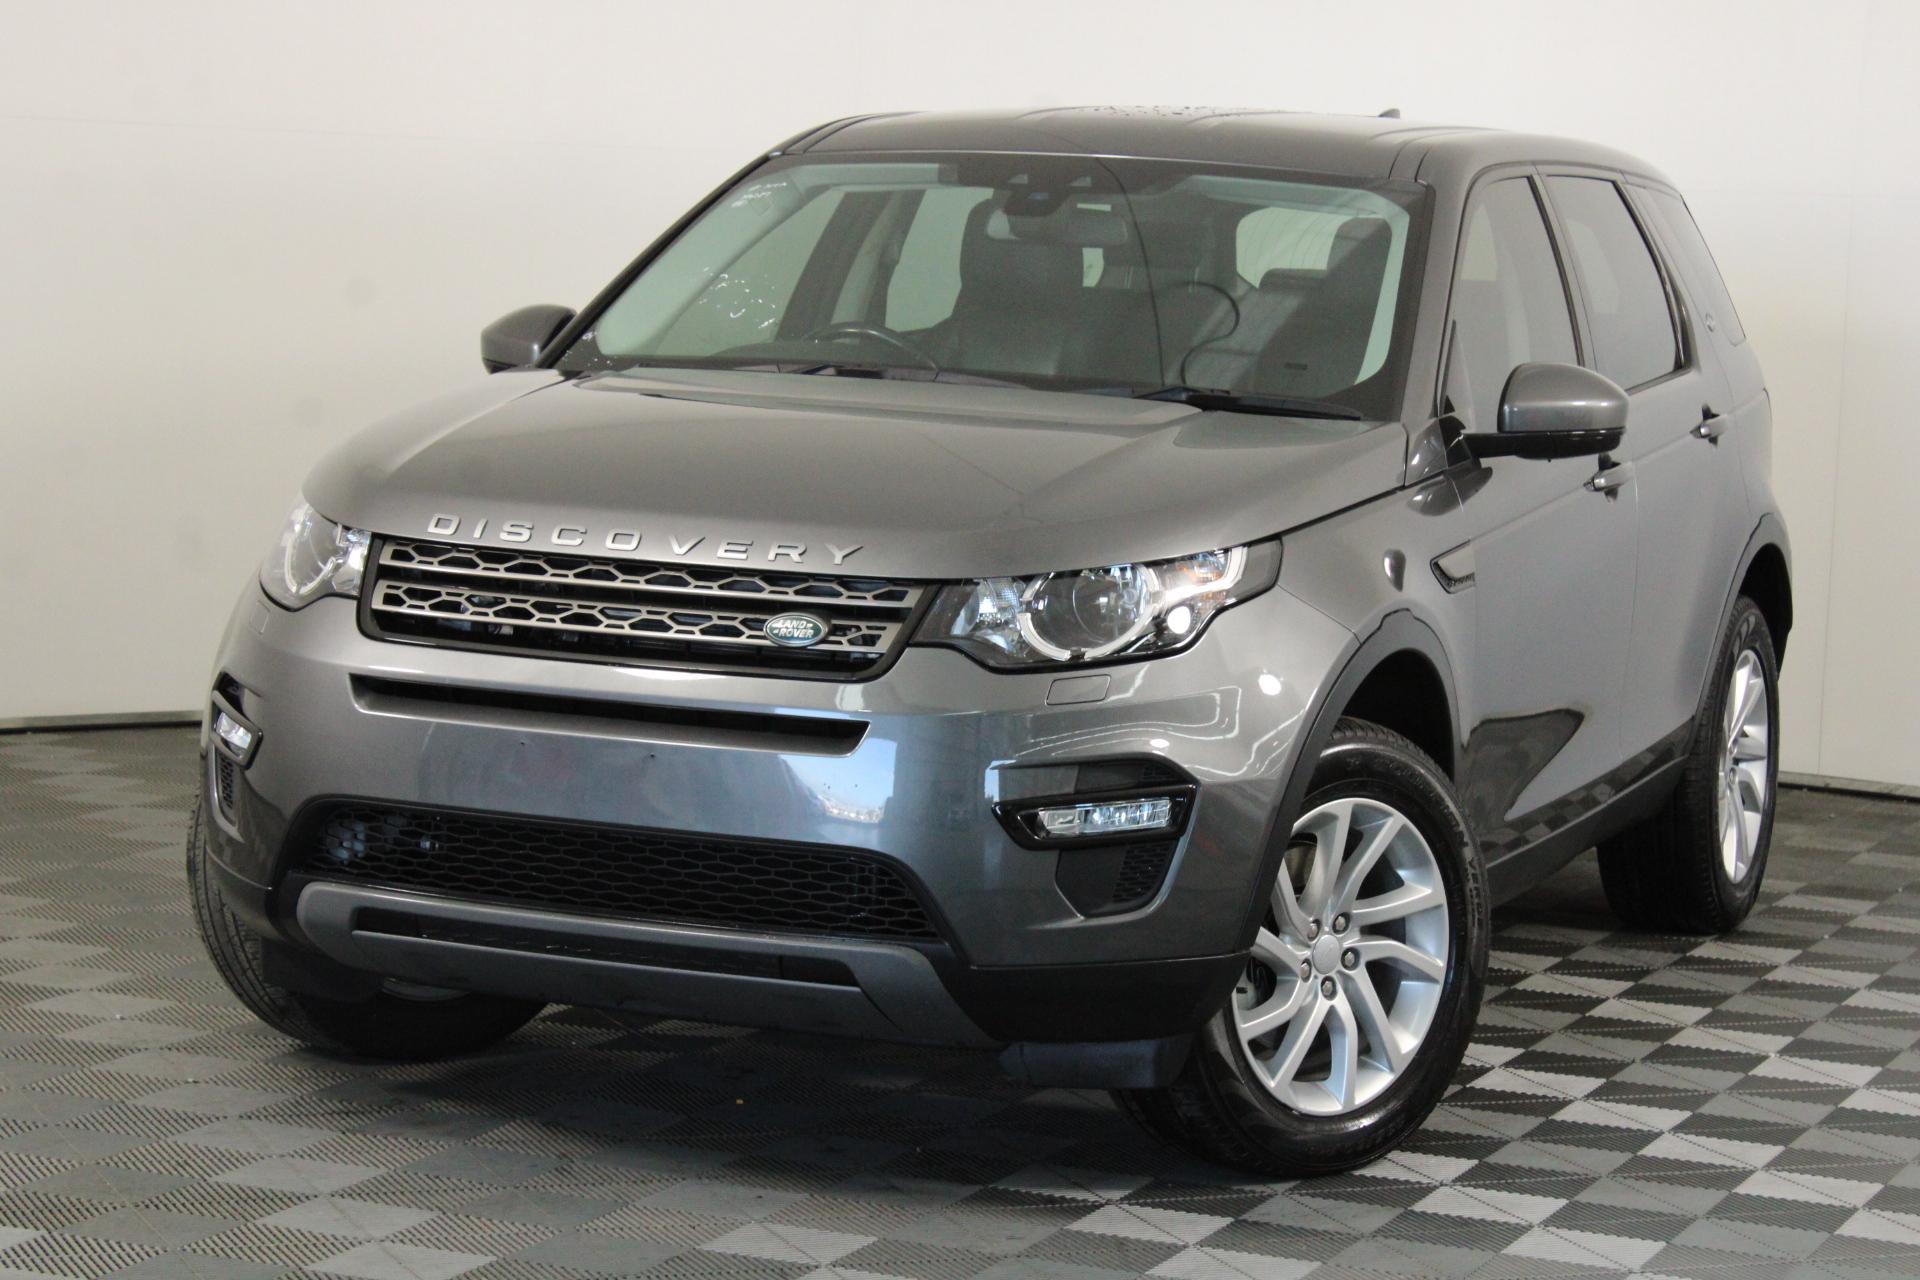 2017 Land Rover DISCOVERY SPORT TD4 150 SE Turbo Diesel 9 auto Wagon